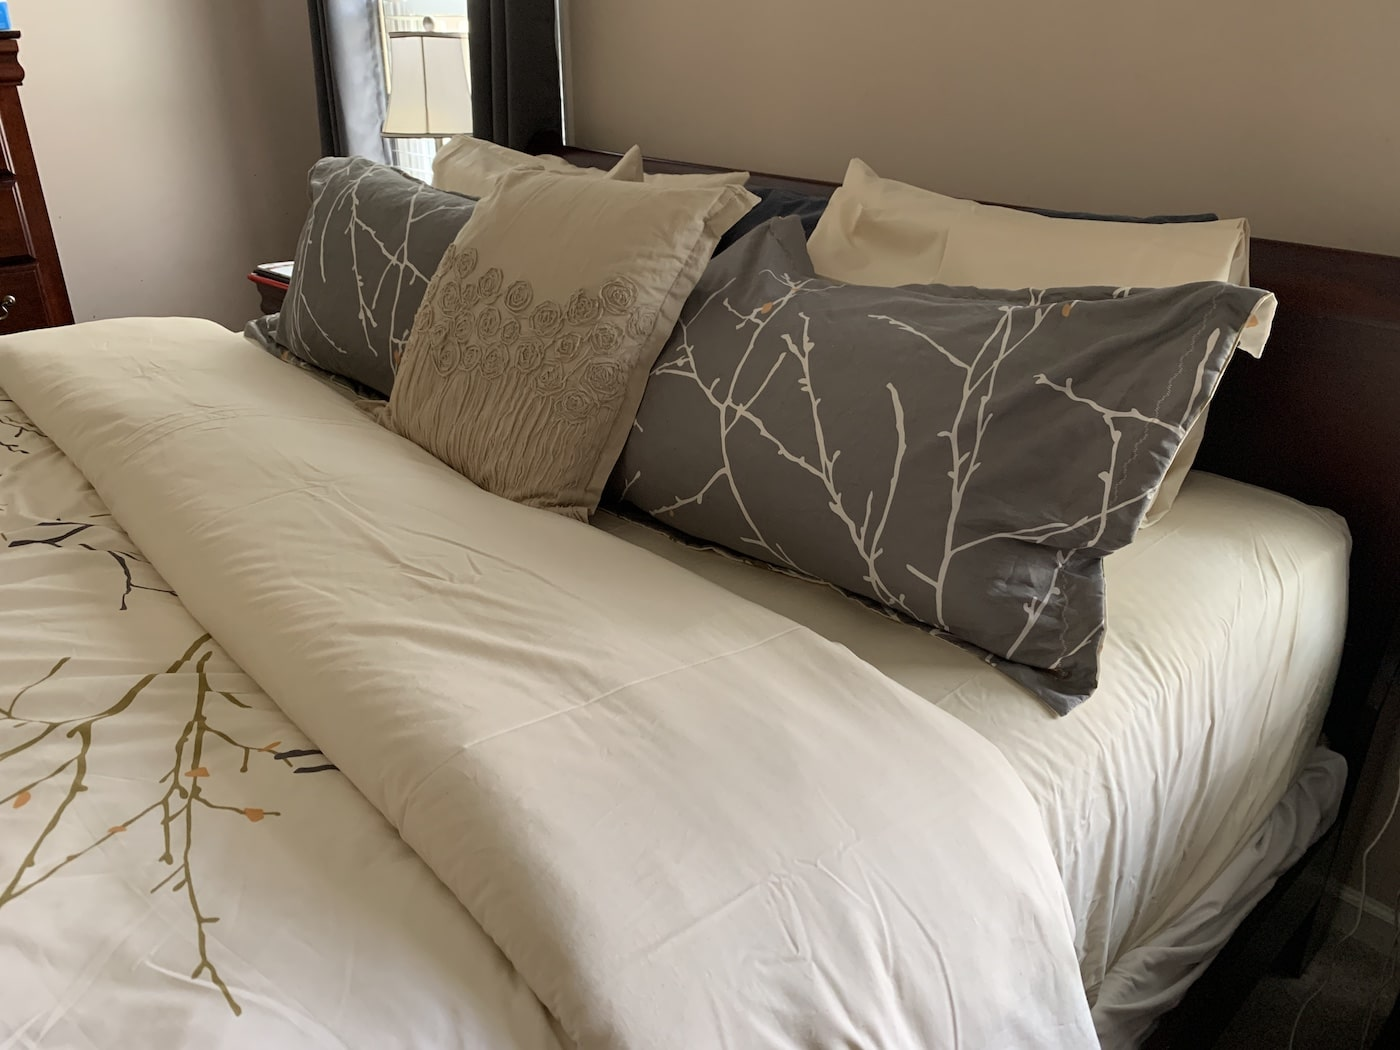 american blossom sheets natural on king bed made